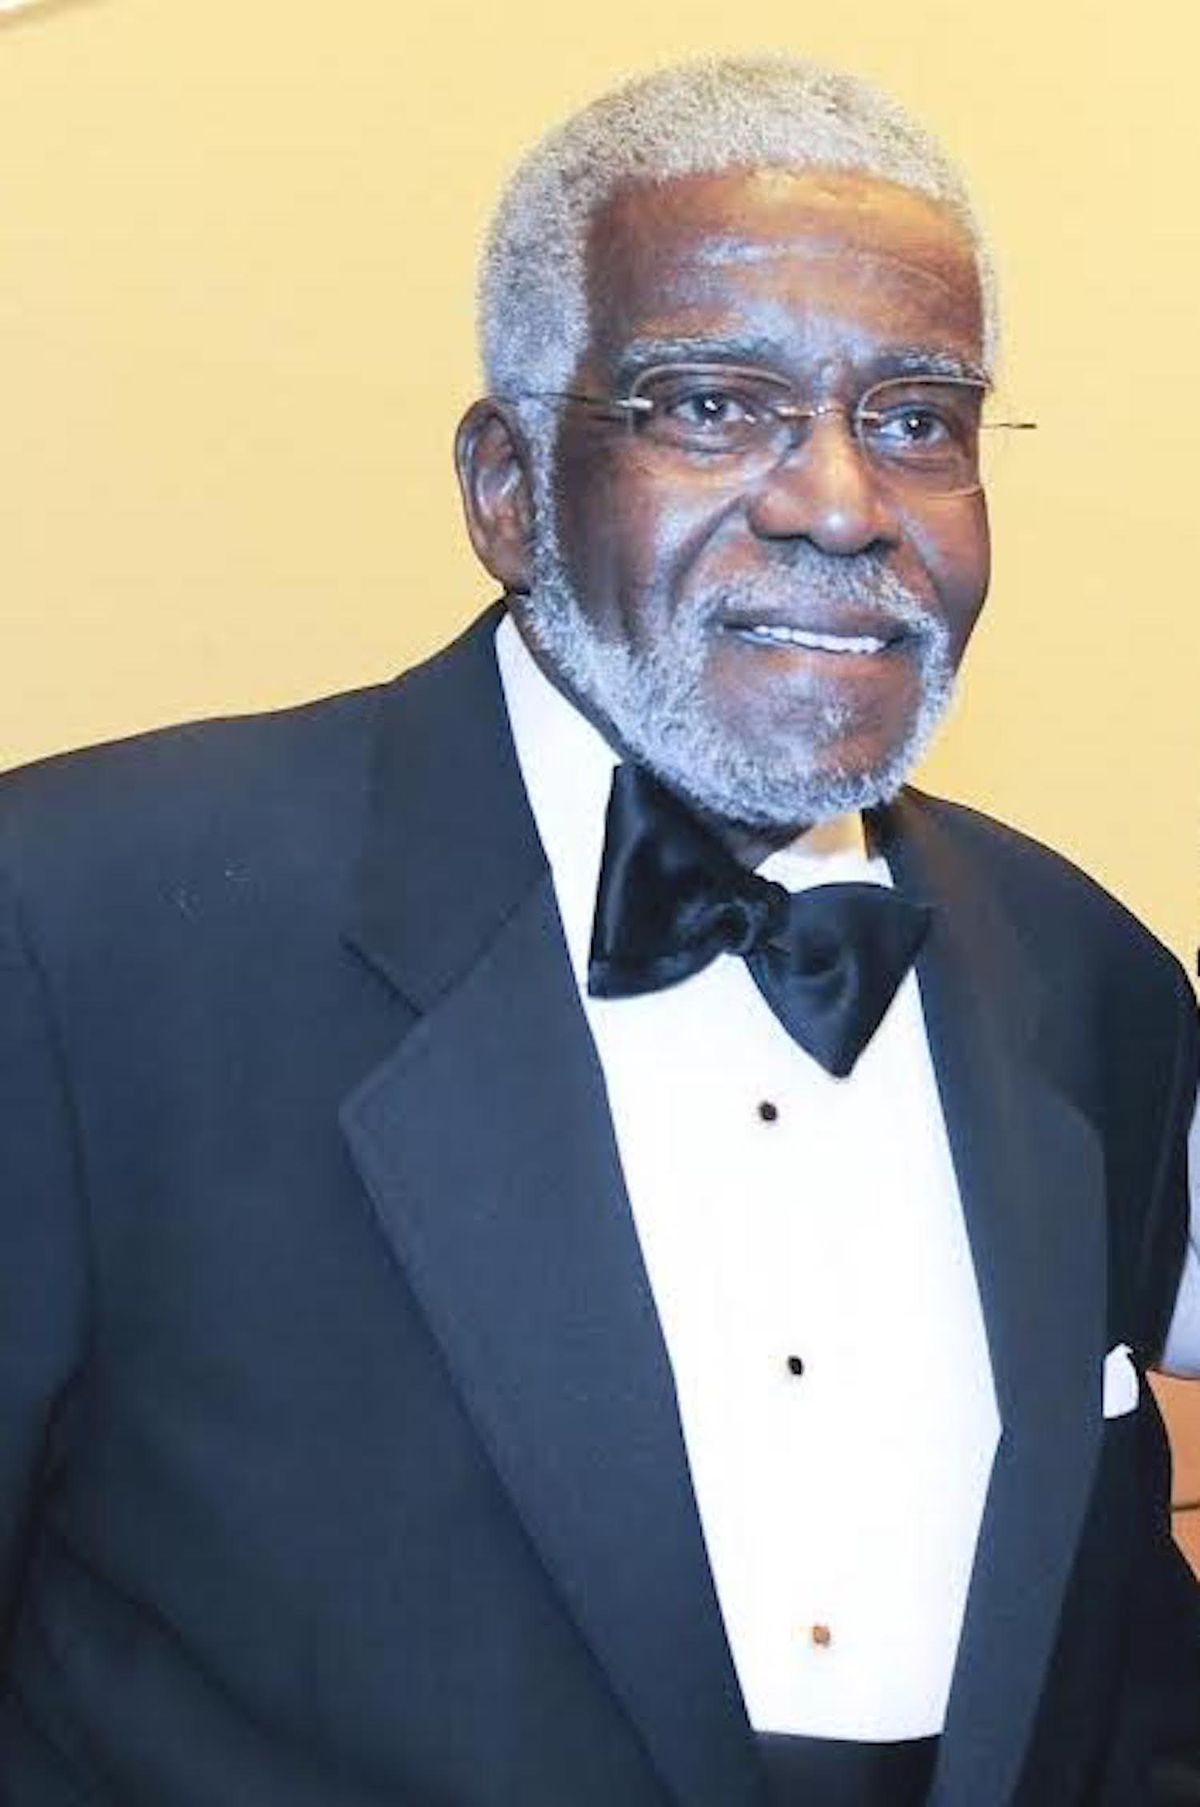 Walter McFall in 2010 at the annual conference of the Society of Women Engineers.